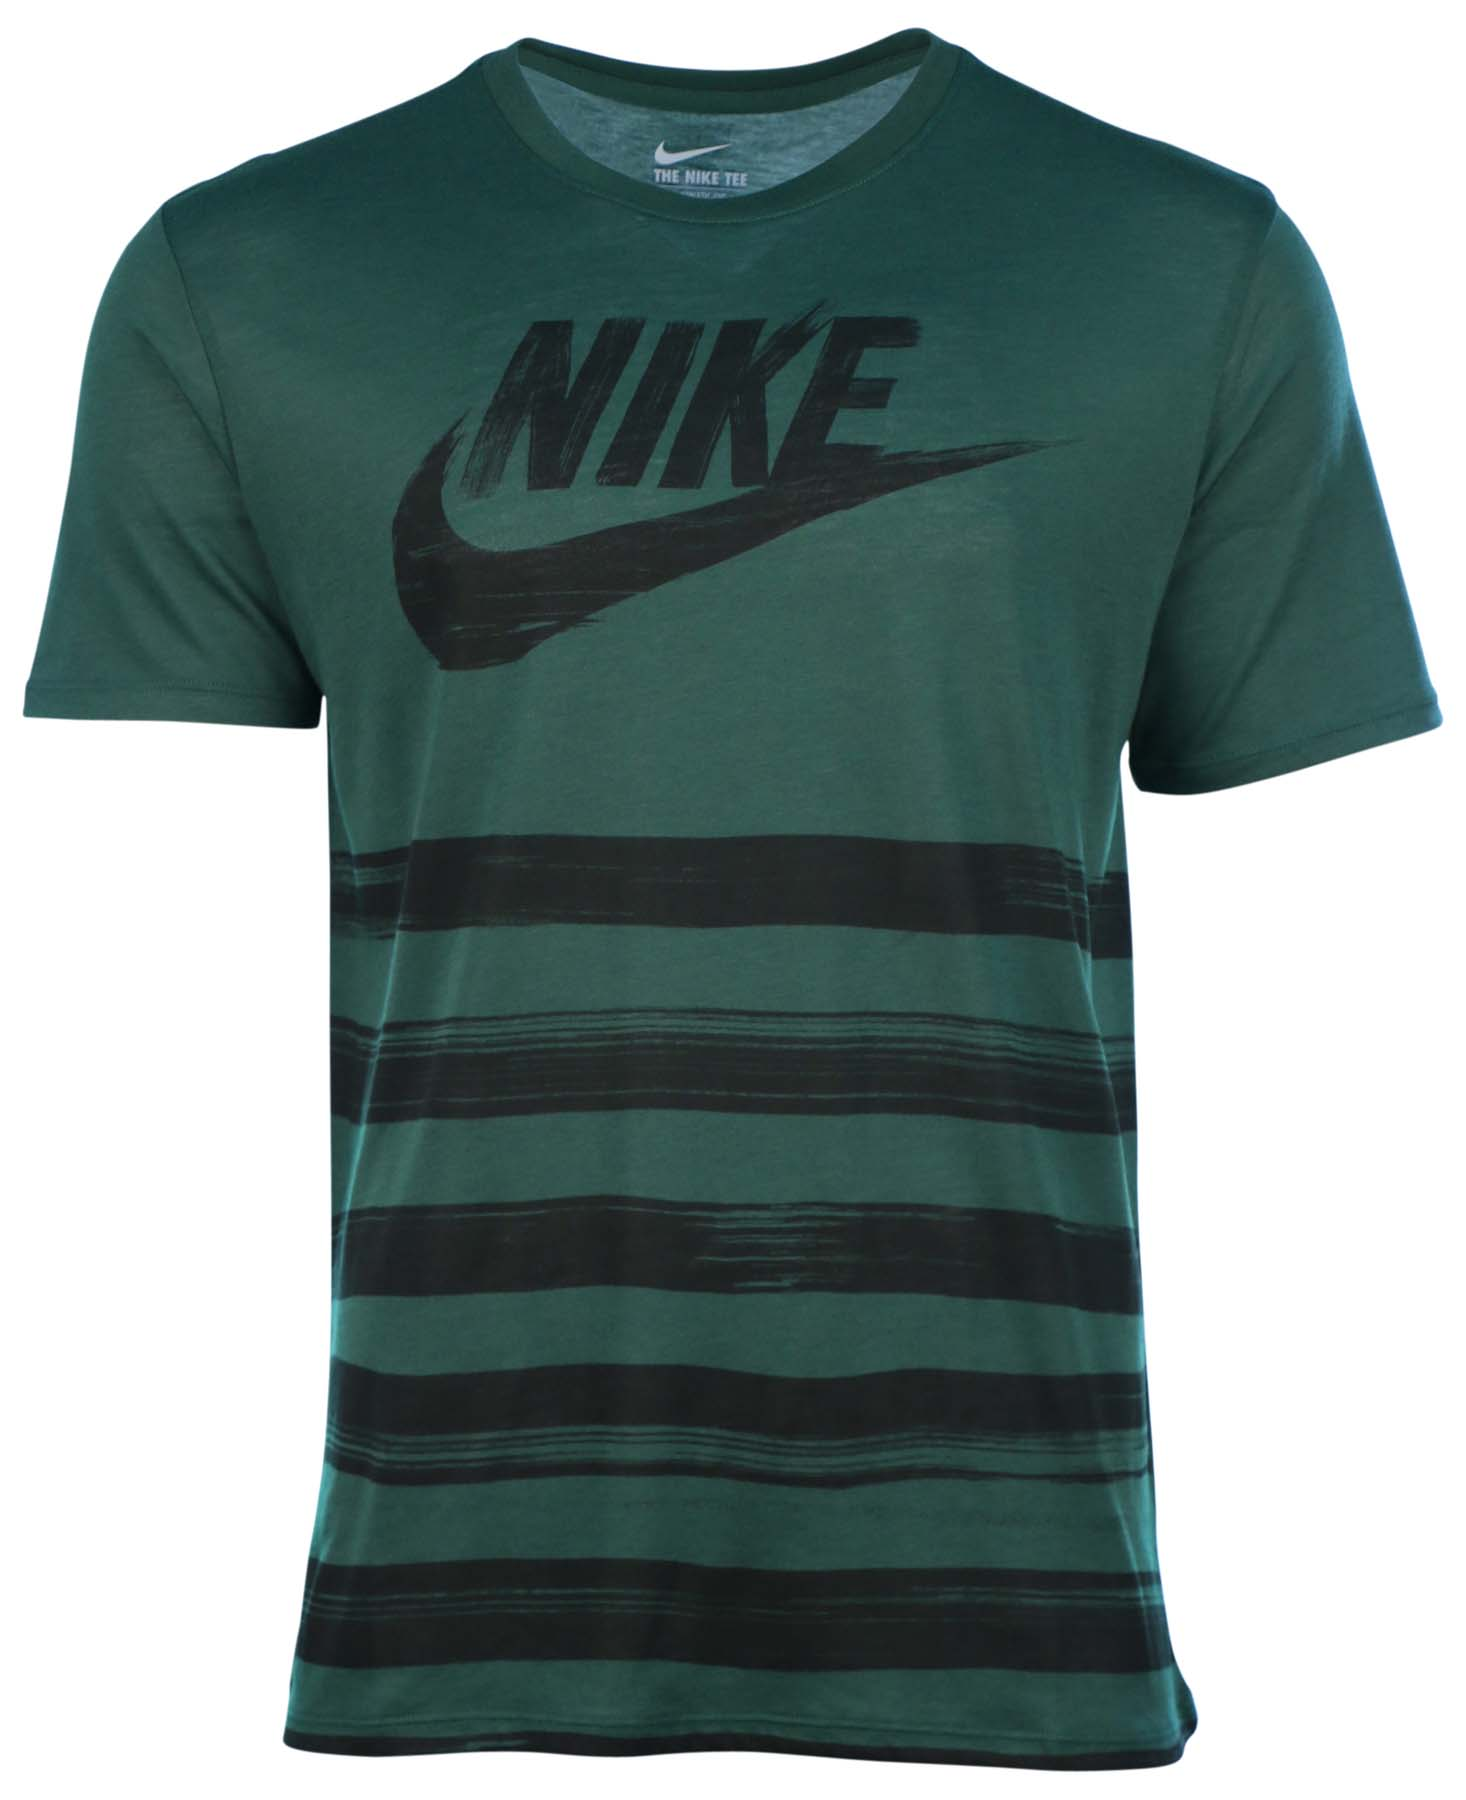 nike men 39 s flow motion futura sport casual t shirt ebay